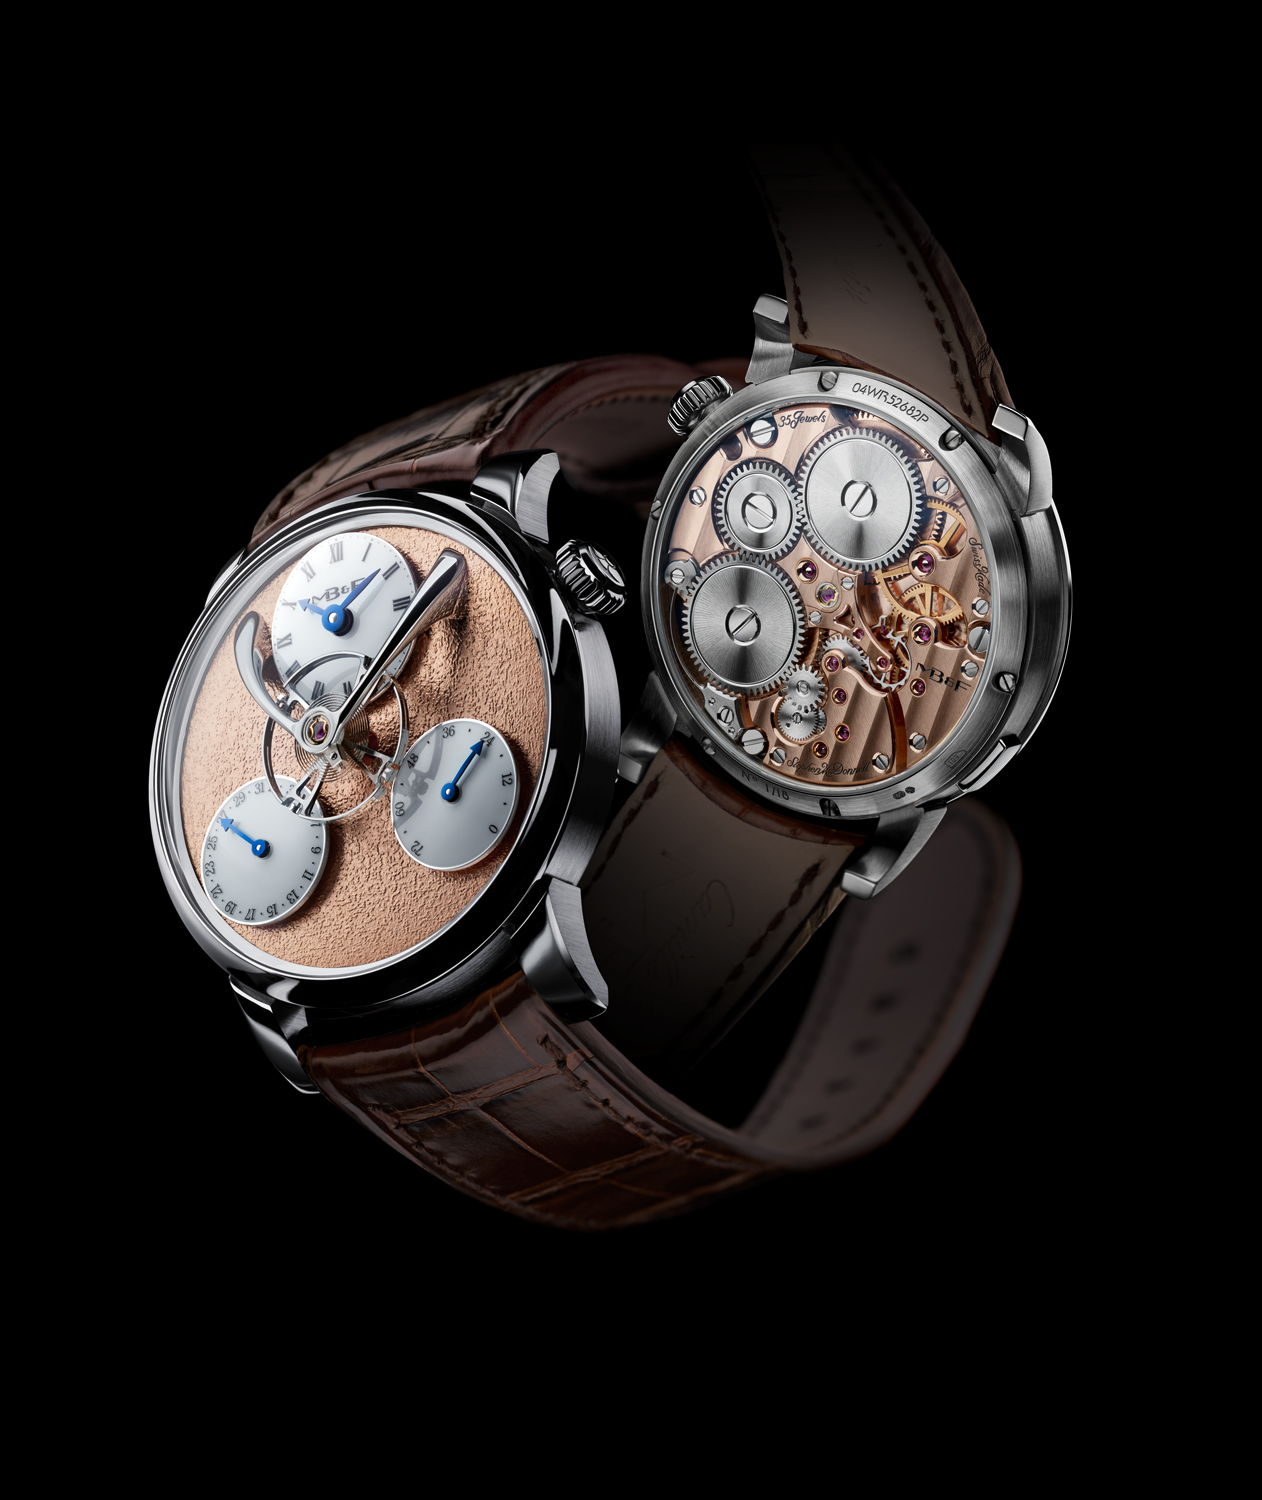 The manual wind movement for the MB&F Legacy Machine Split-Escapement was developed for MB&F by Stephen McDonnell, who also developed the Legacy Machine Perpetual two years ago.